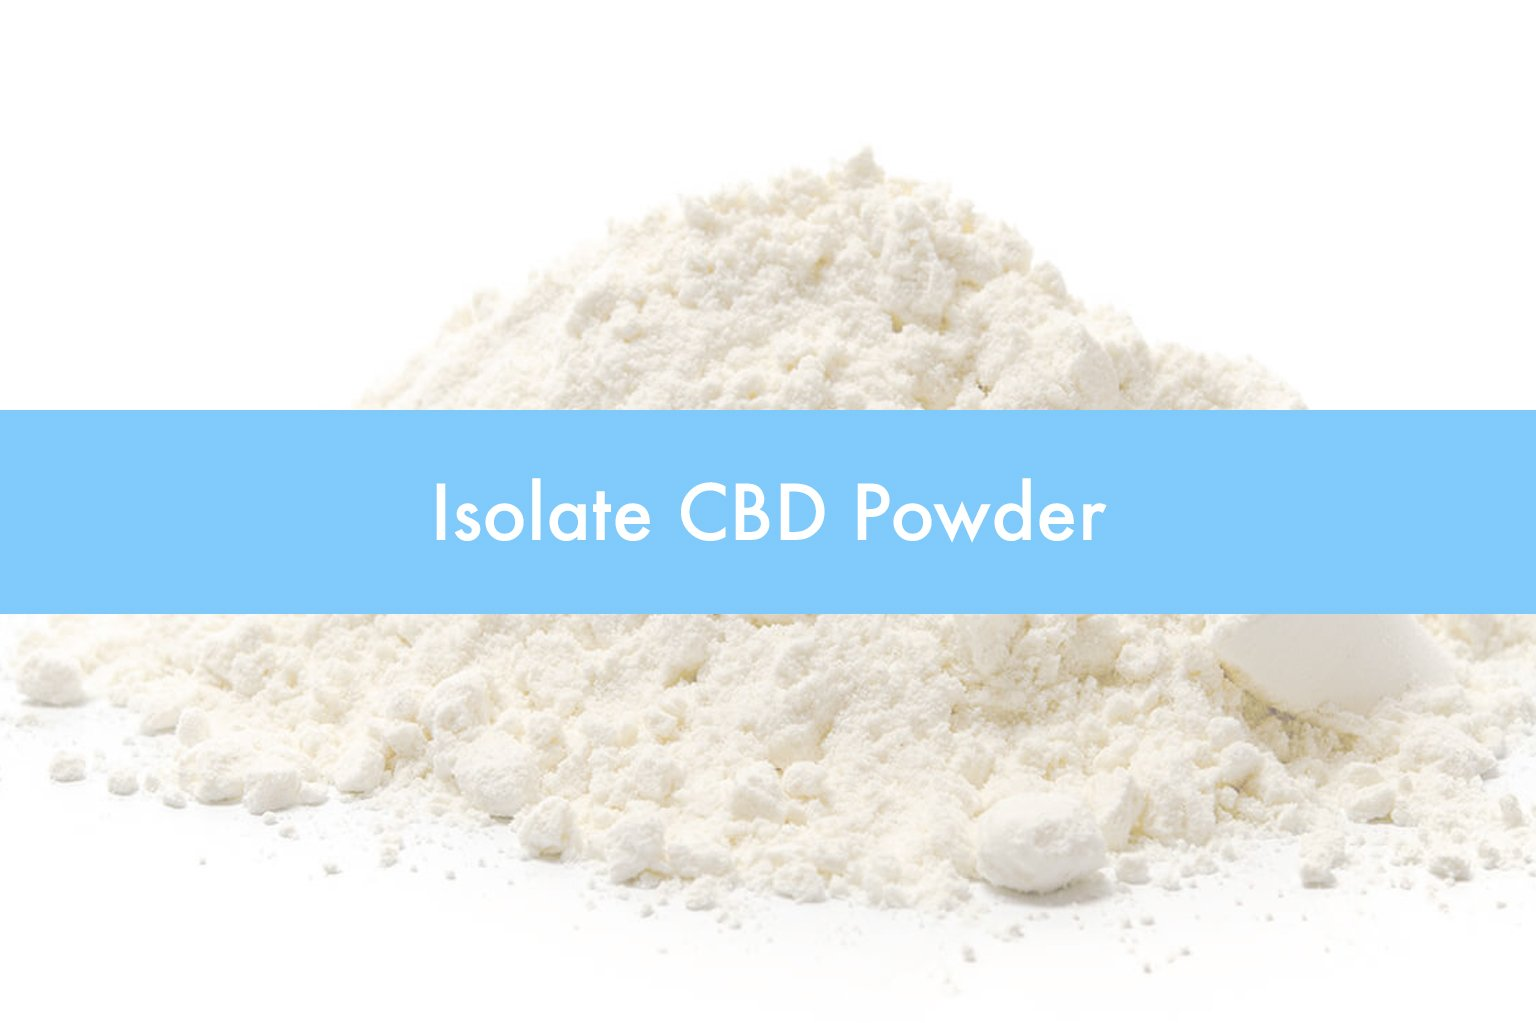 Using Soothe CBD Isolate Powder